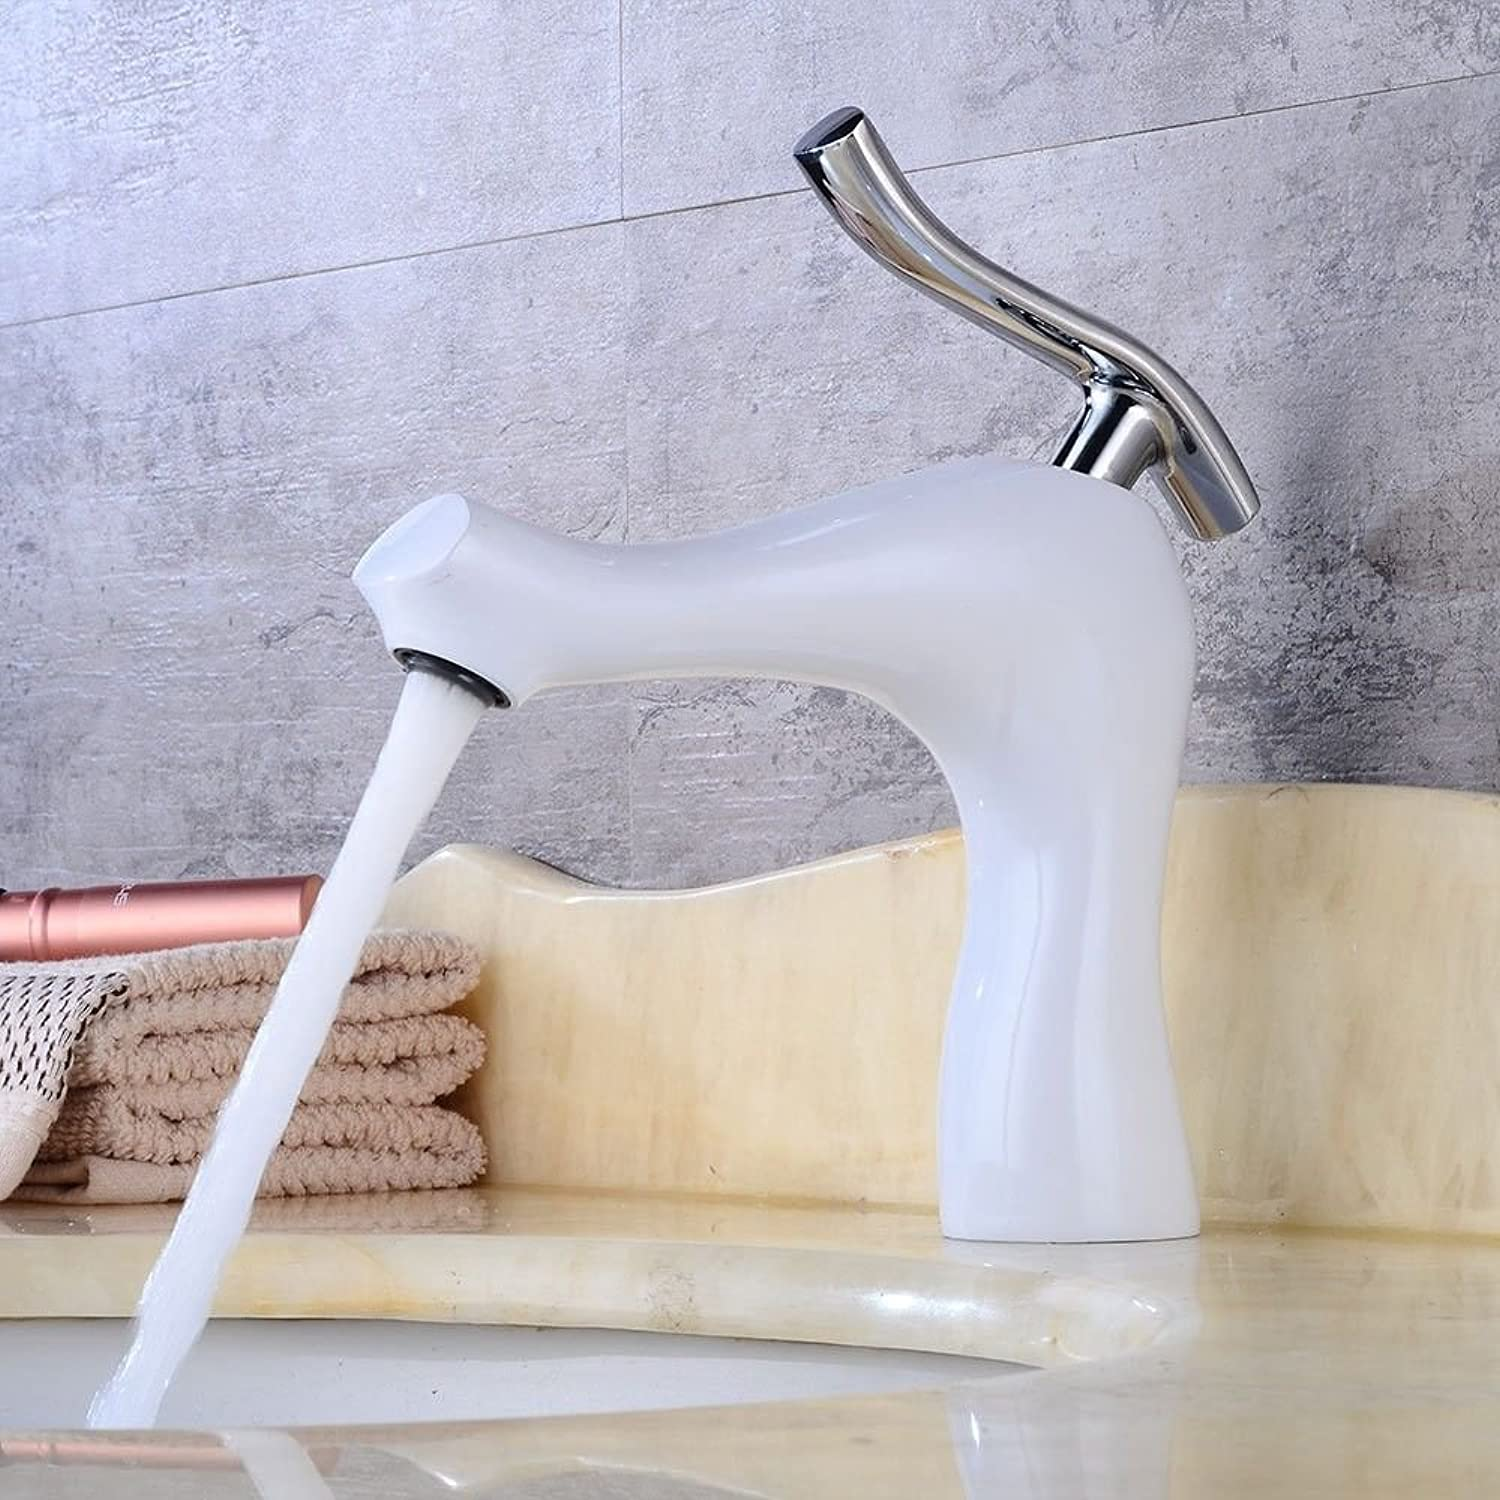 ETERNAL QUALITY Bathroom Sink Basin Tap Brass Mixer Tap Washroom Mixer Faucet Antique style brass single handle one hole ceramic valve cold water bathroom basin mixer gri